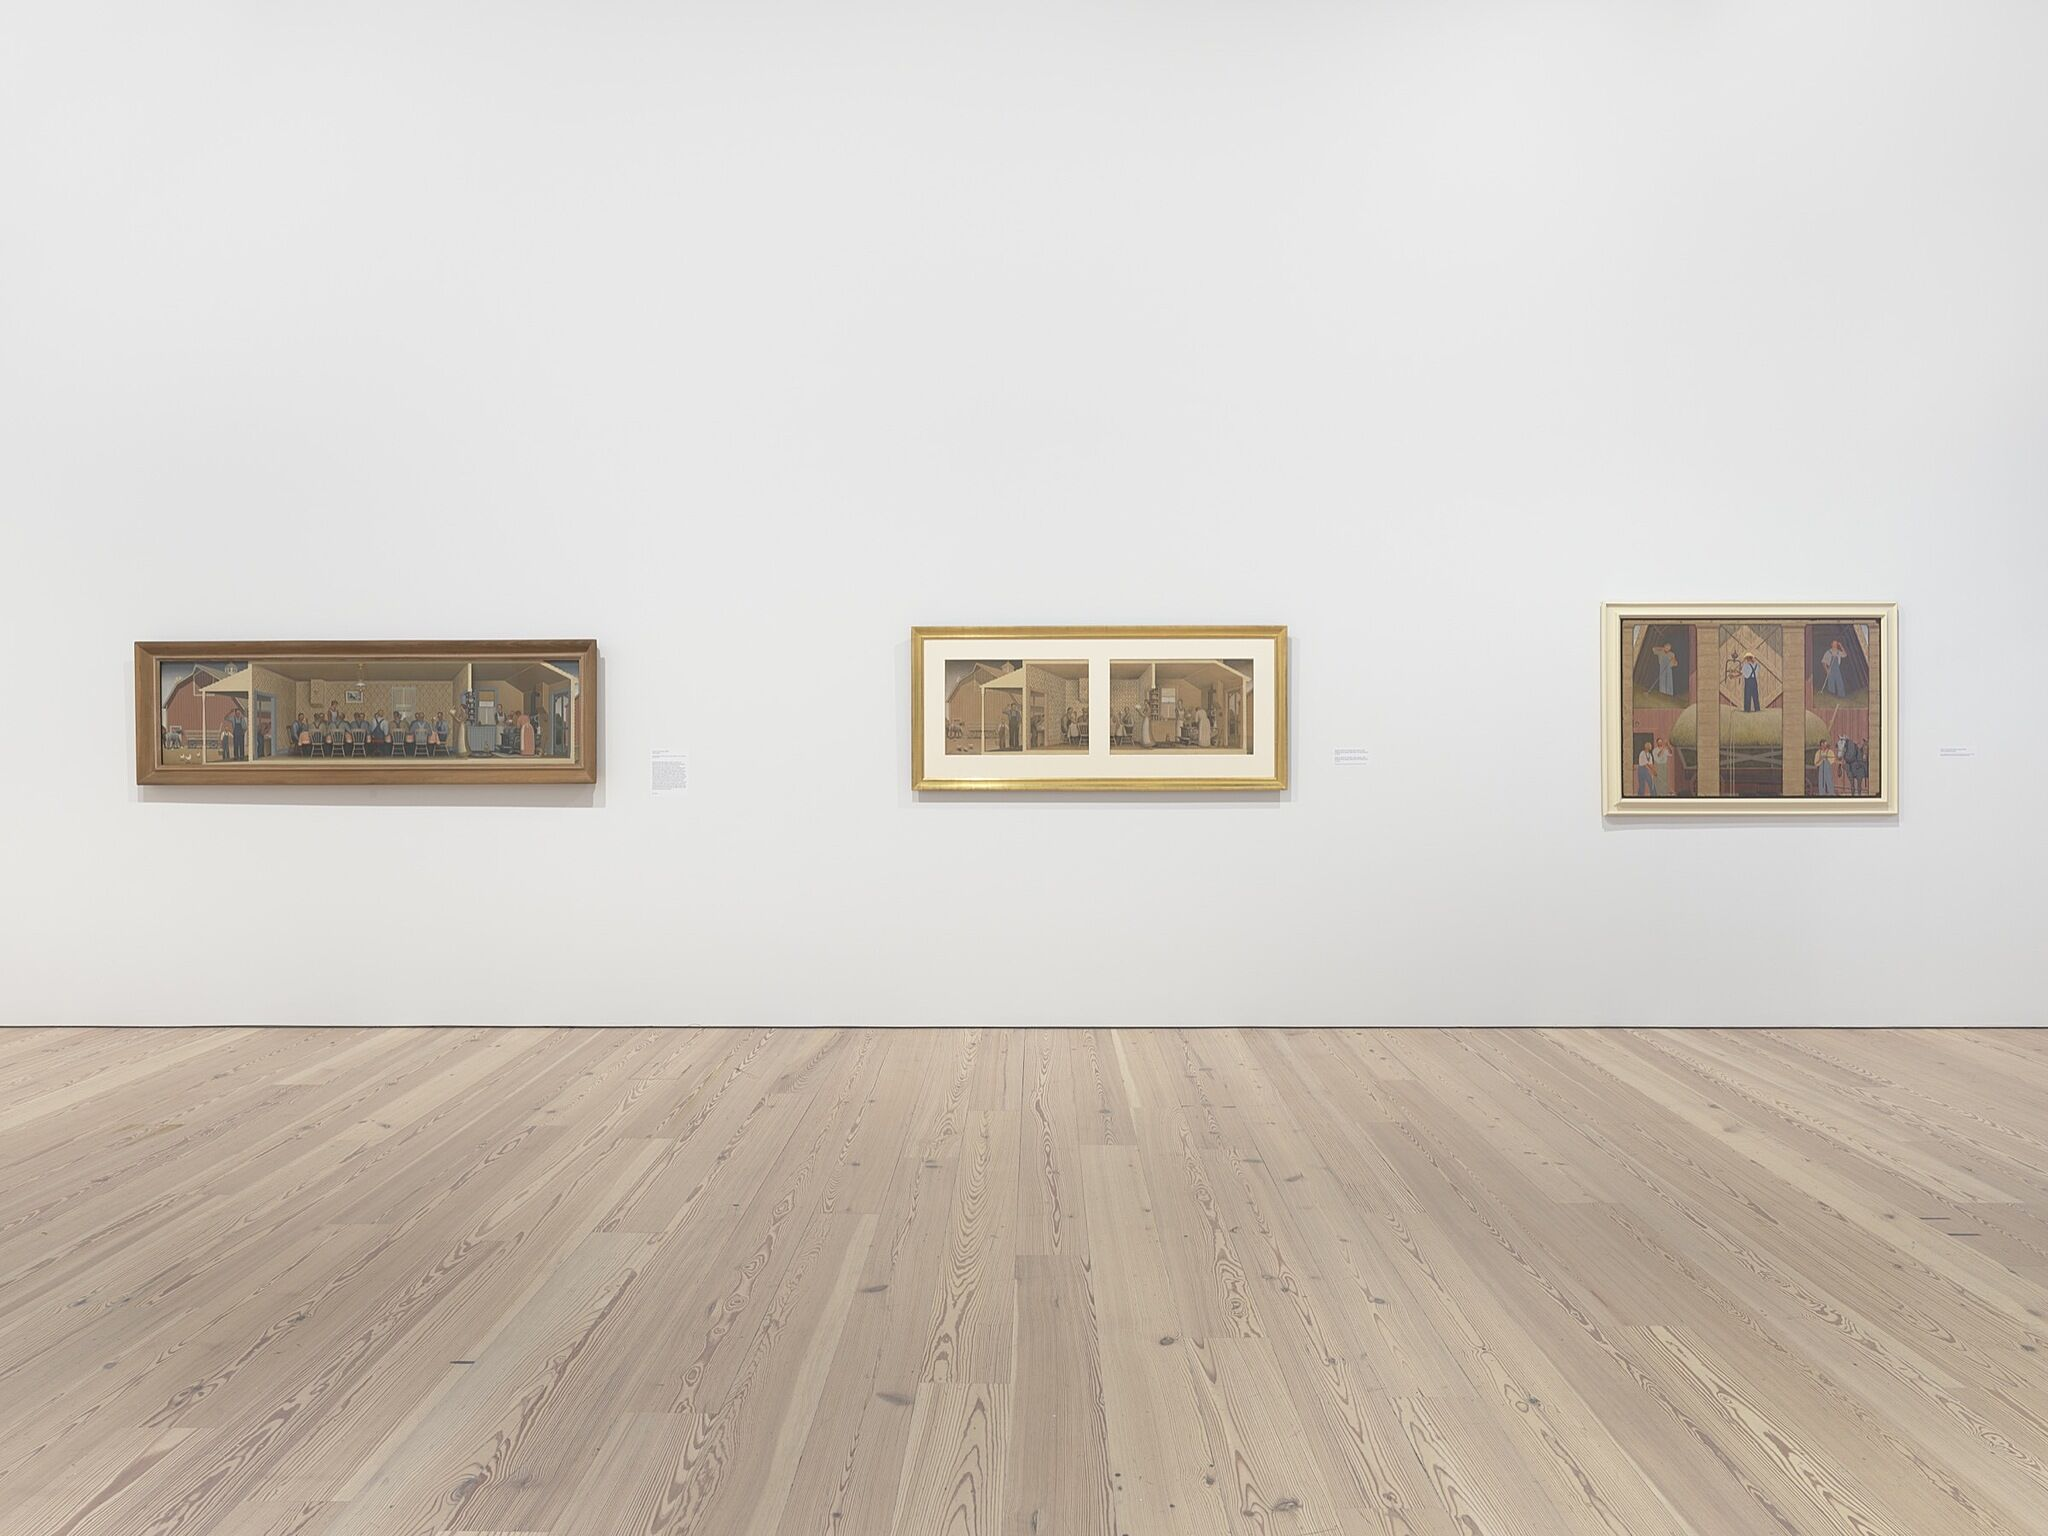 Three paintings on a white wall in a gallery.